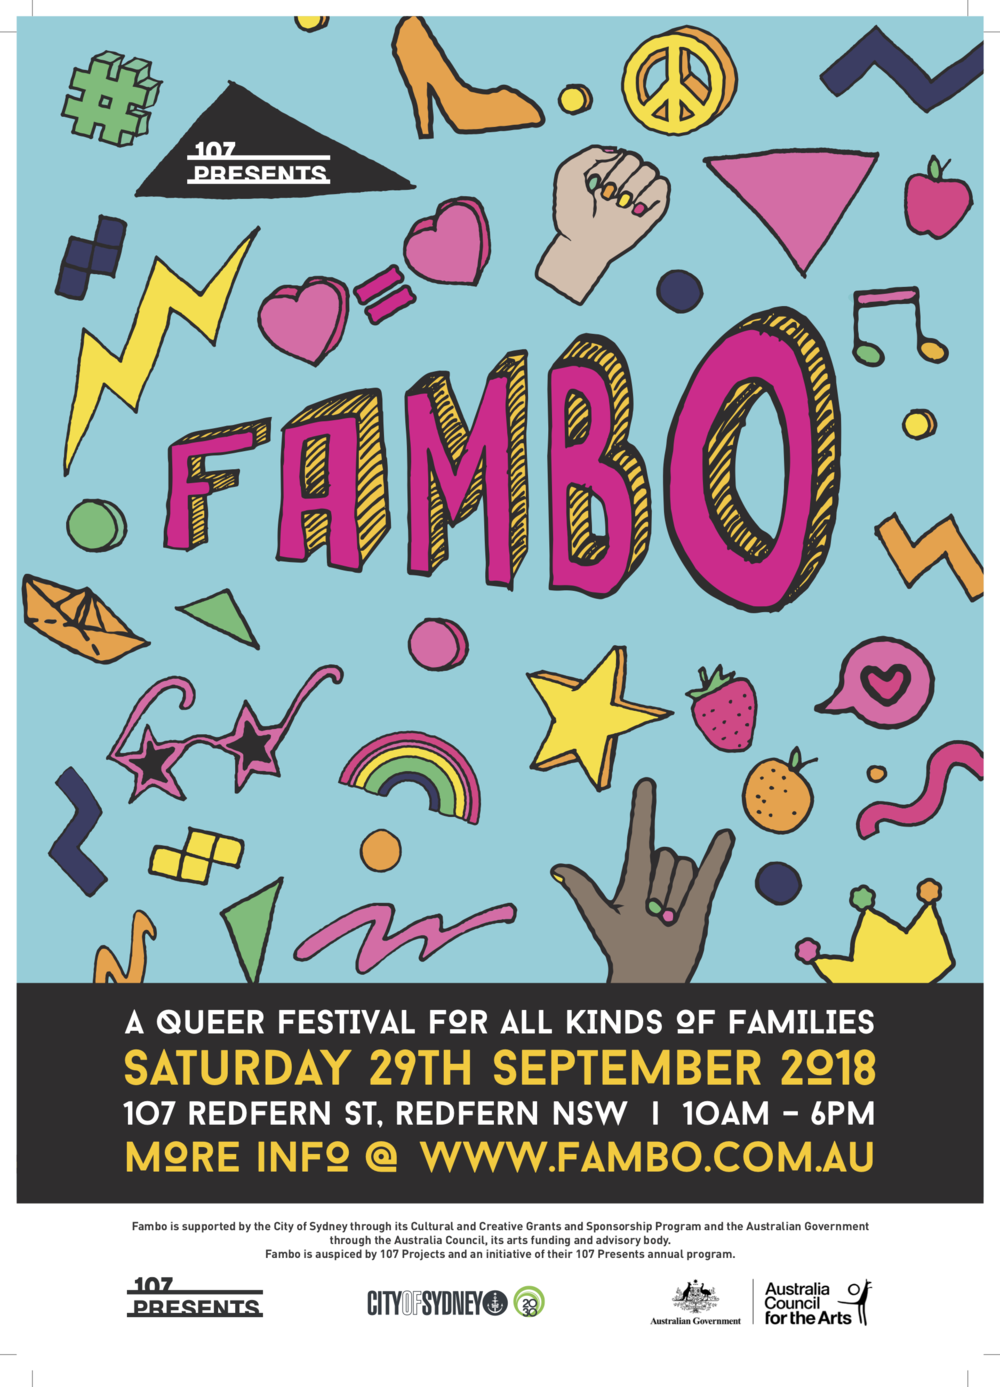 Final Poster Fambo_A3_6.7.18_cmyk_HighRes.png